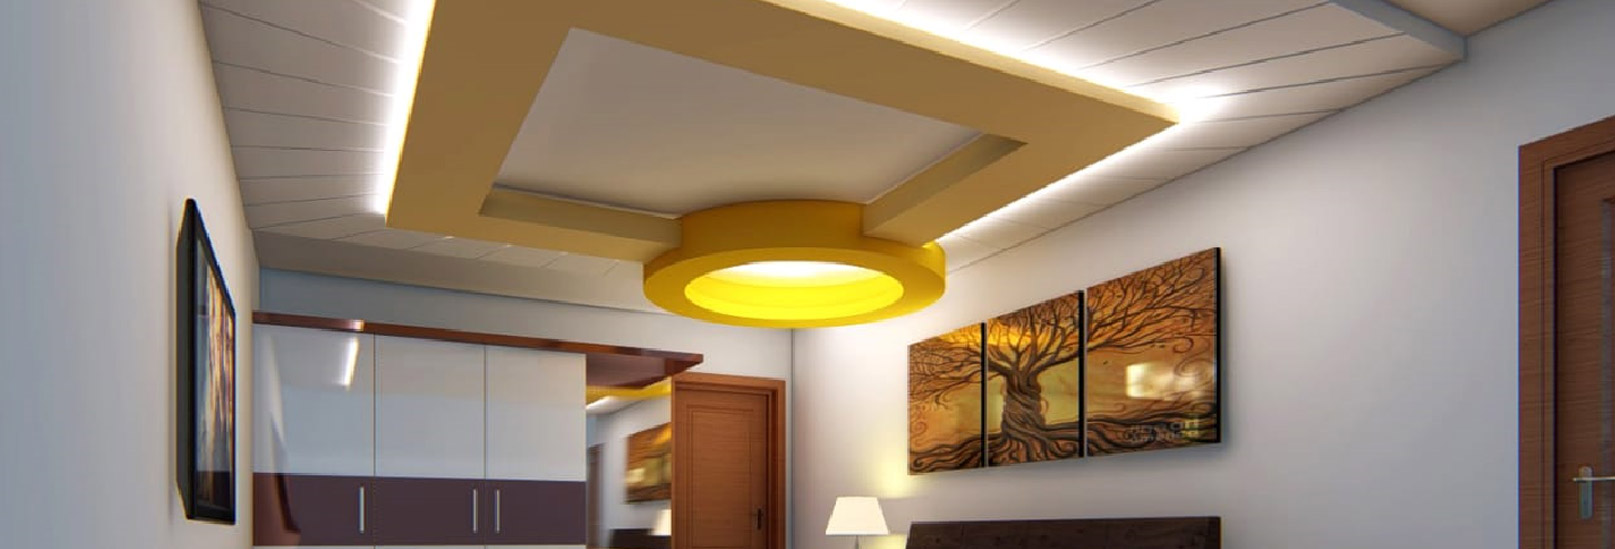 top 5 bedroom false celling designs you will love